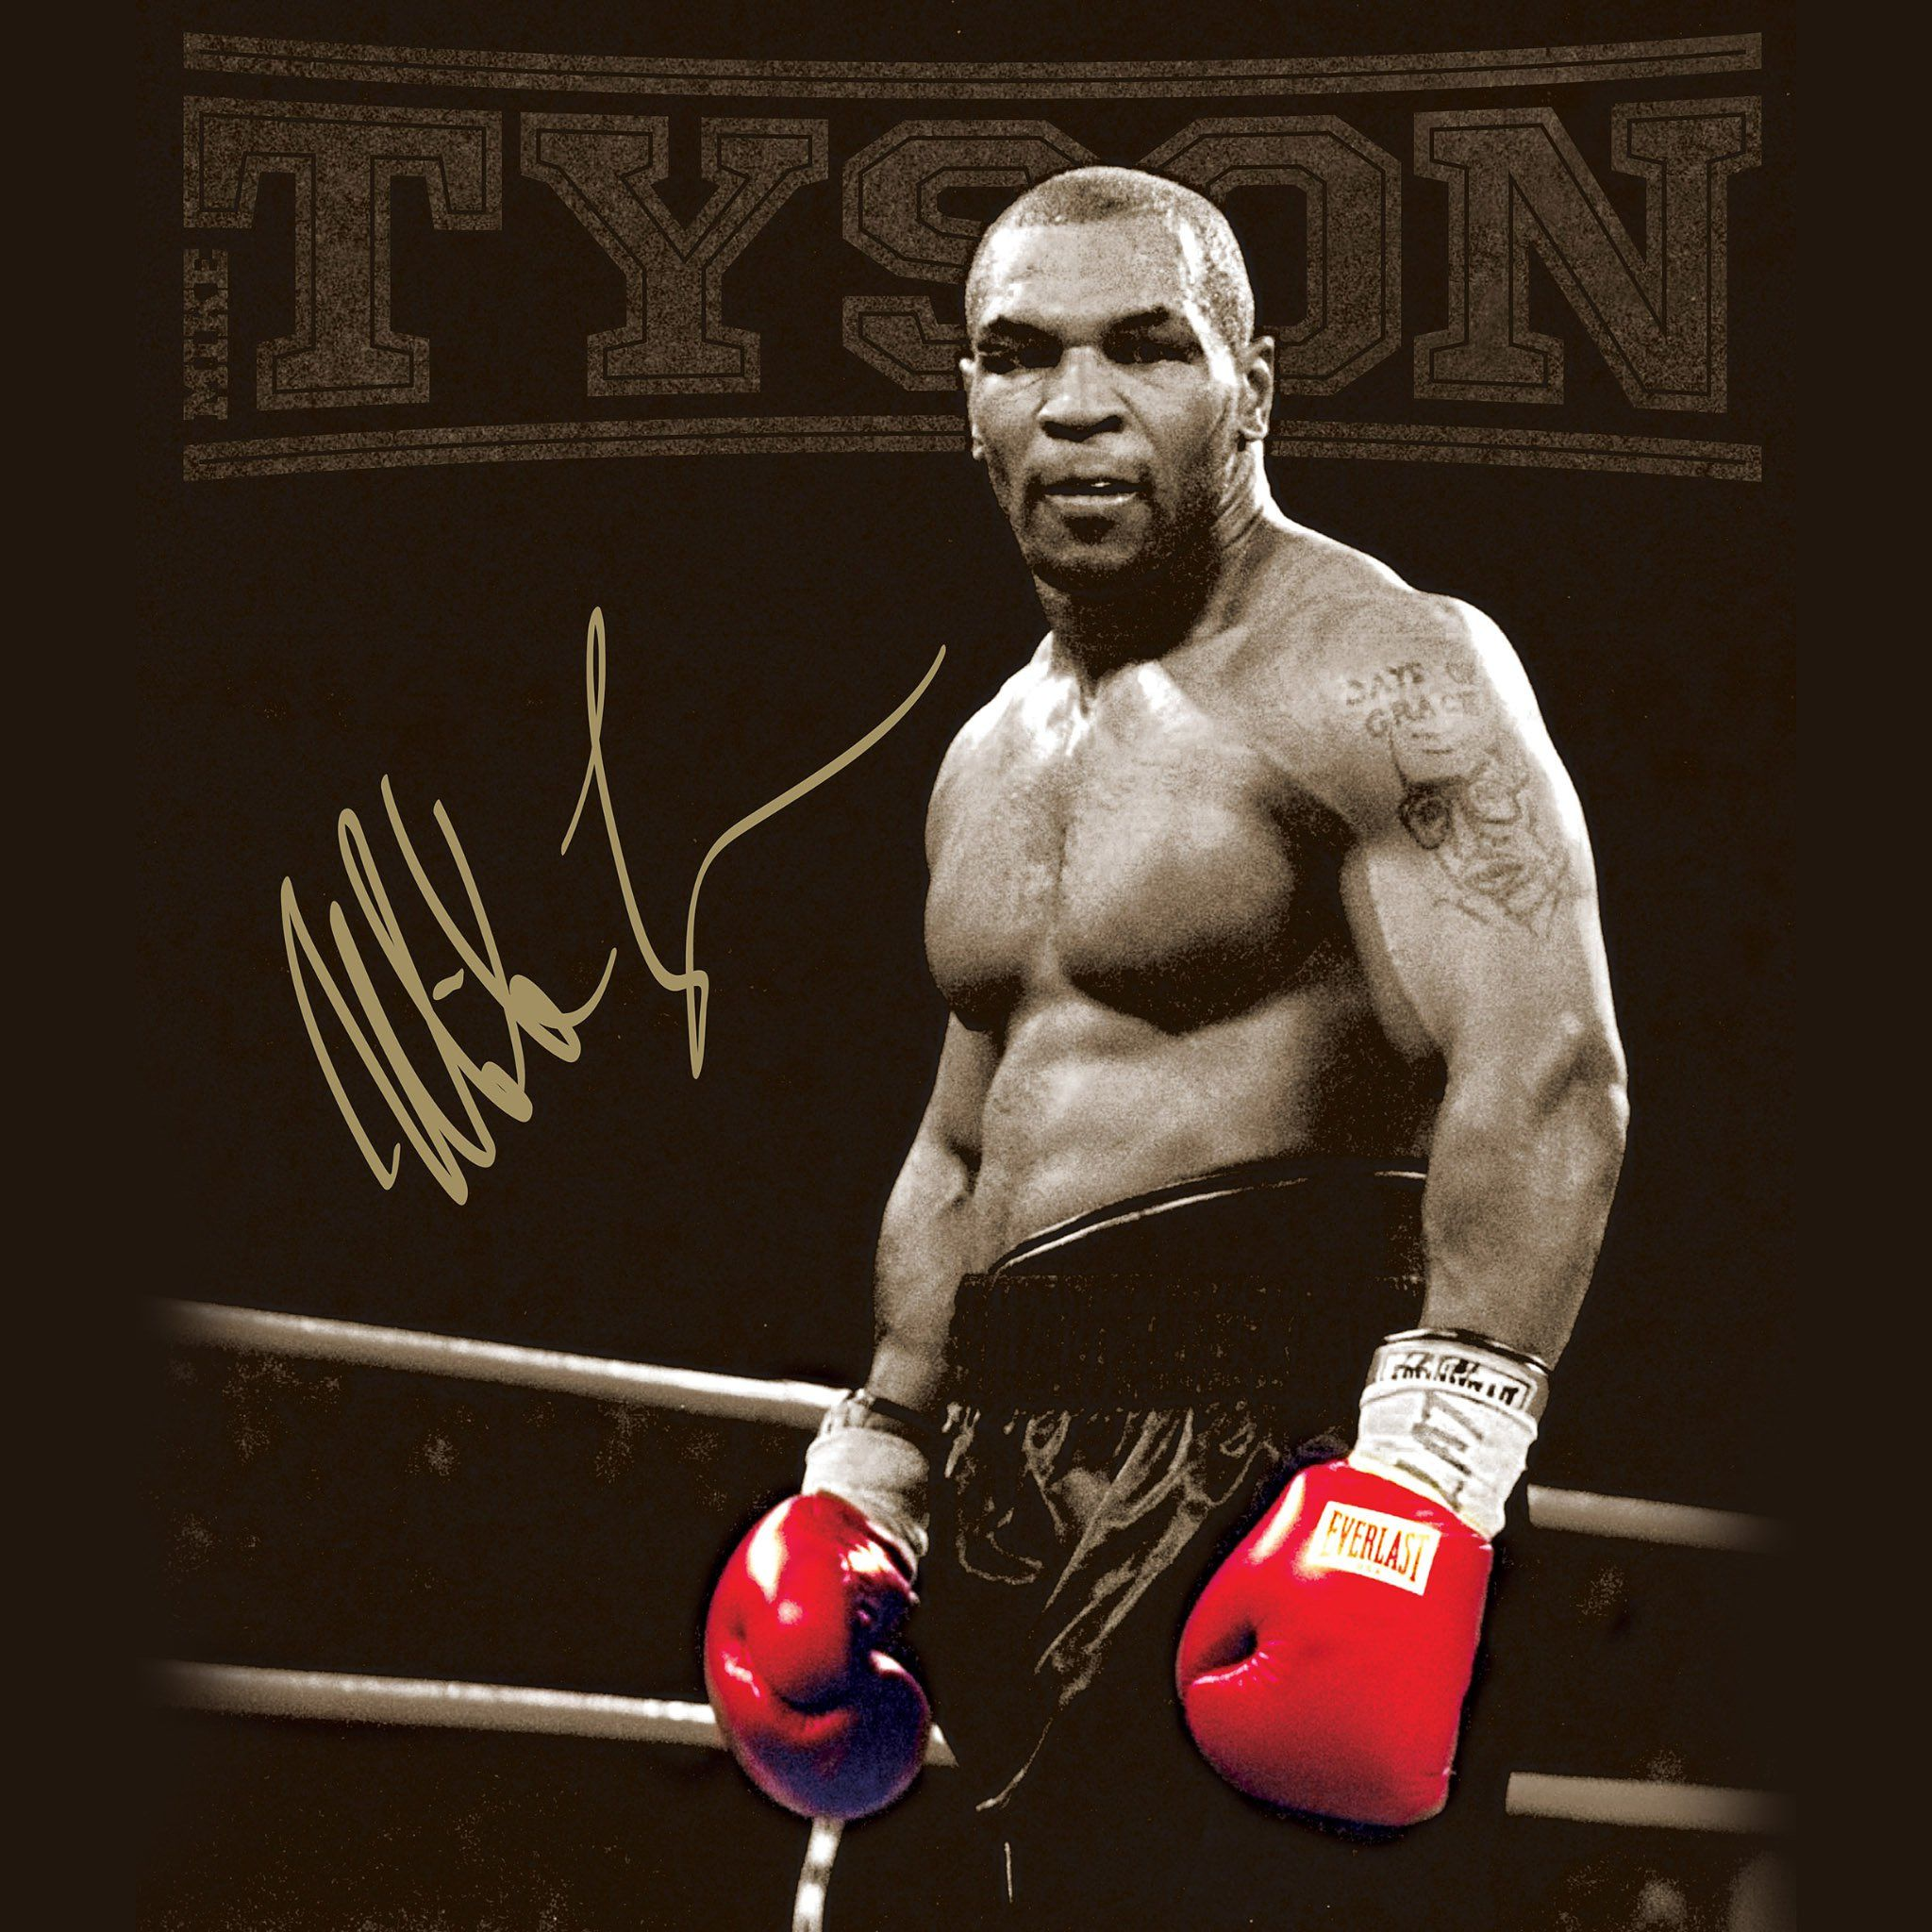 2048x2048 - Mike Tyson Wallpapers 1